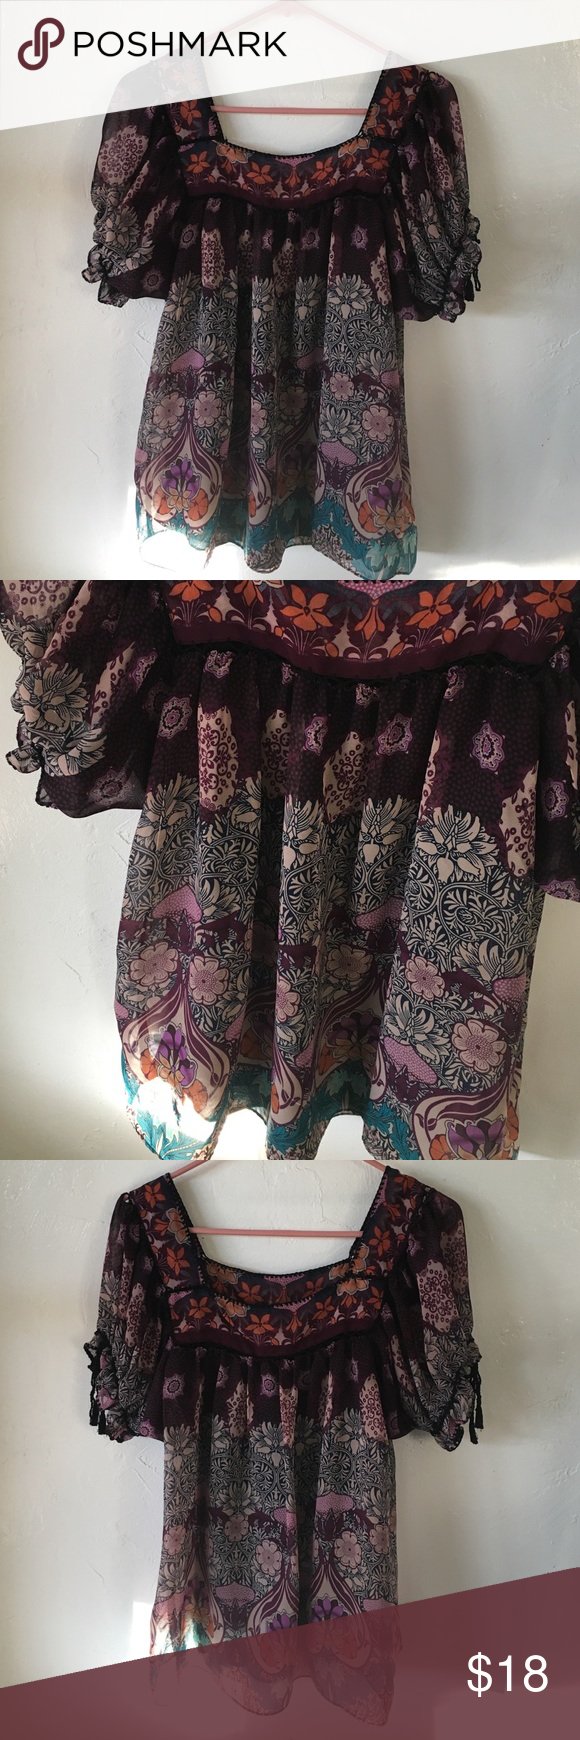 Floral boho blouse This is a fun printed blouse with little cotton thread details around the top. It has ties around each sleeve to make them looser or tighter. This comes with a tank underneath, so not to worry about layering. It is a size 8, but it could fit anyone who wears a small or medium well. It is flowy and awesome colors! I.C.E Tops Blouses